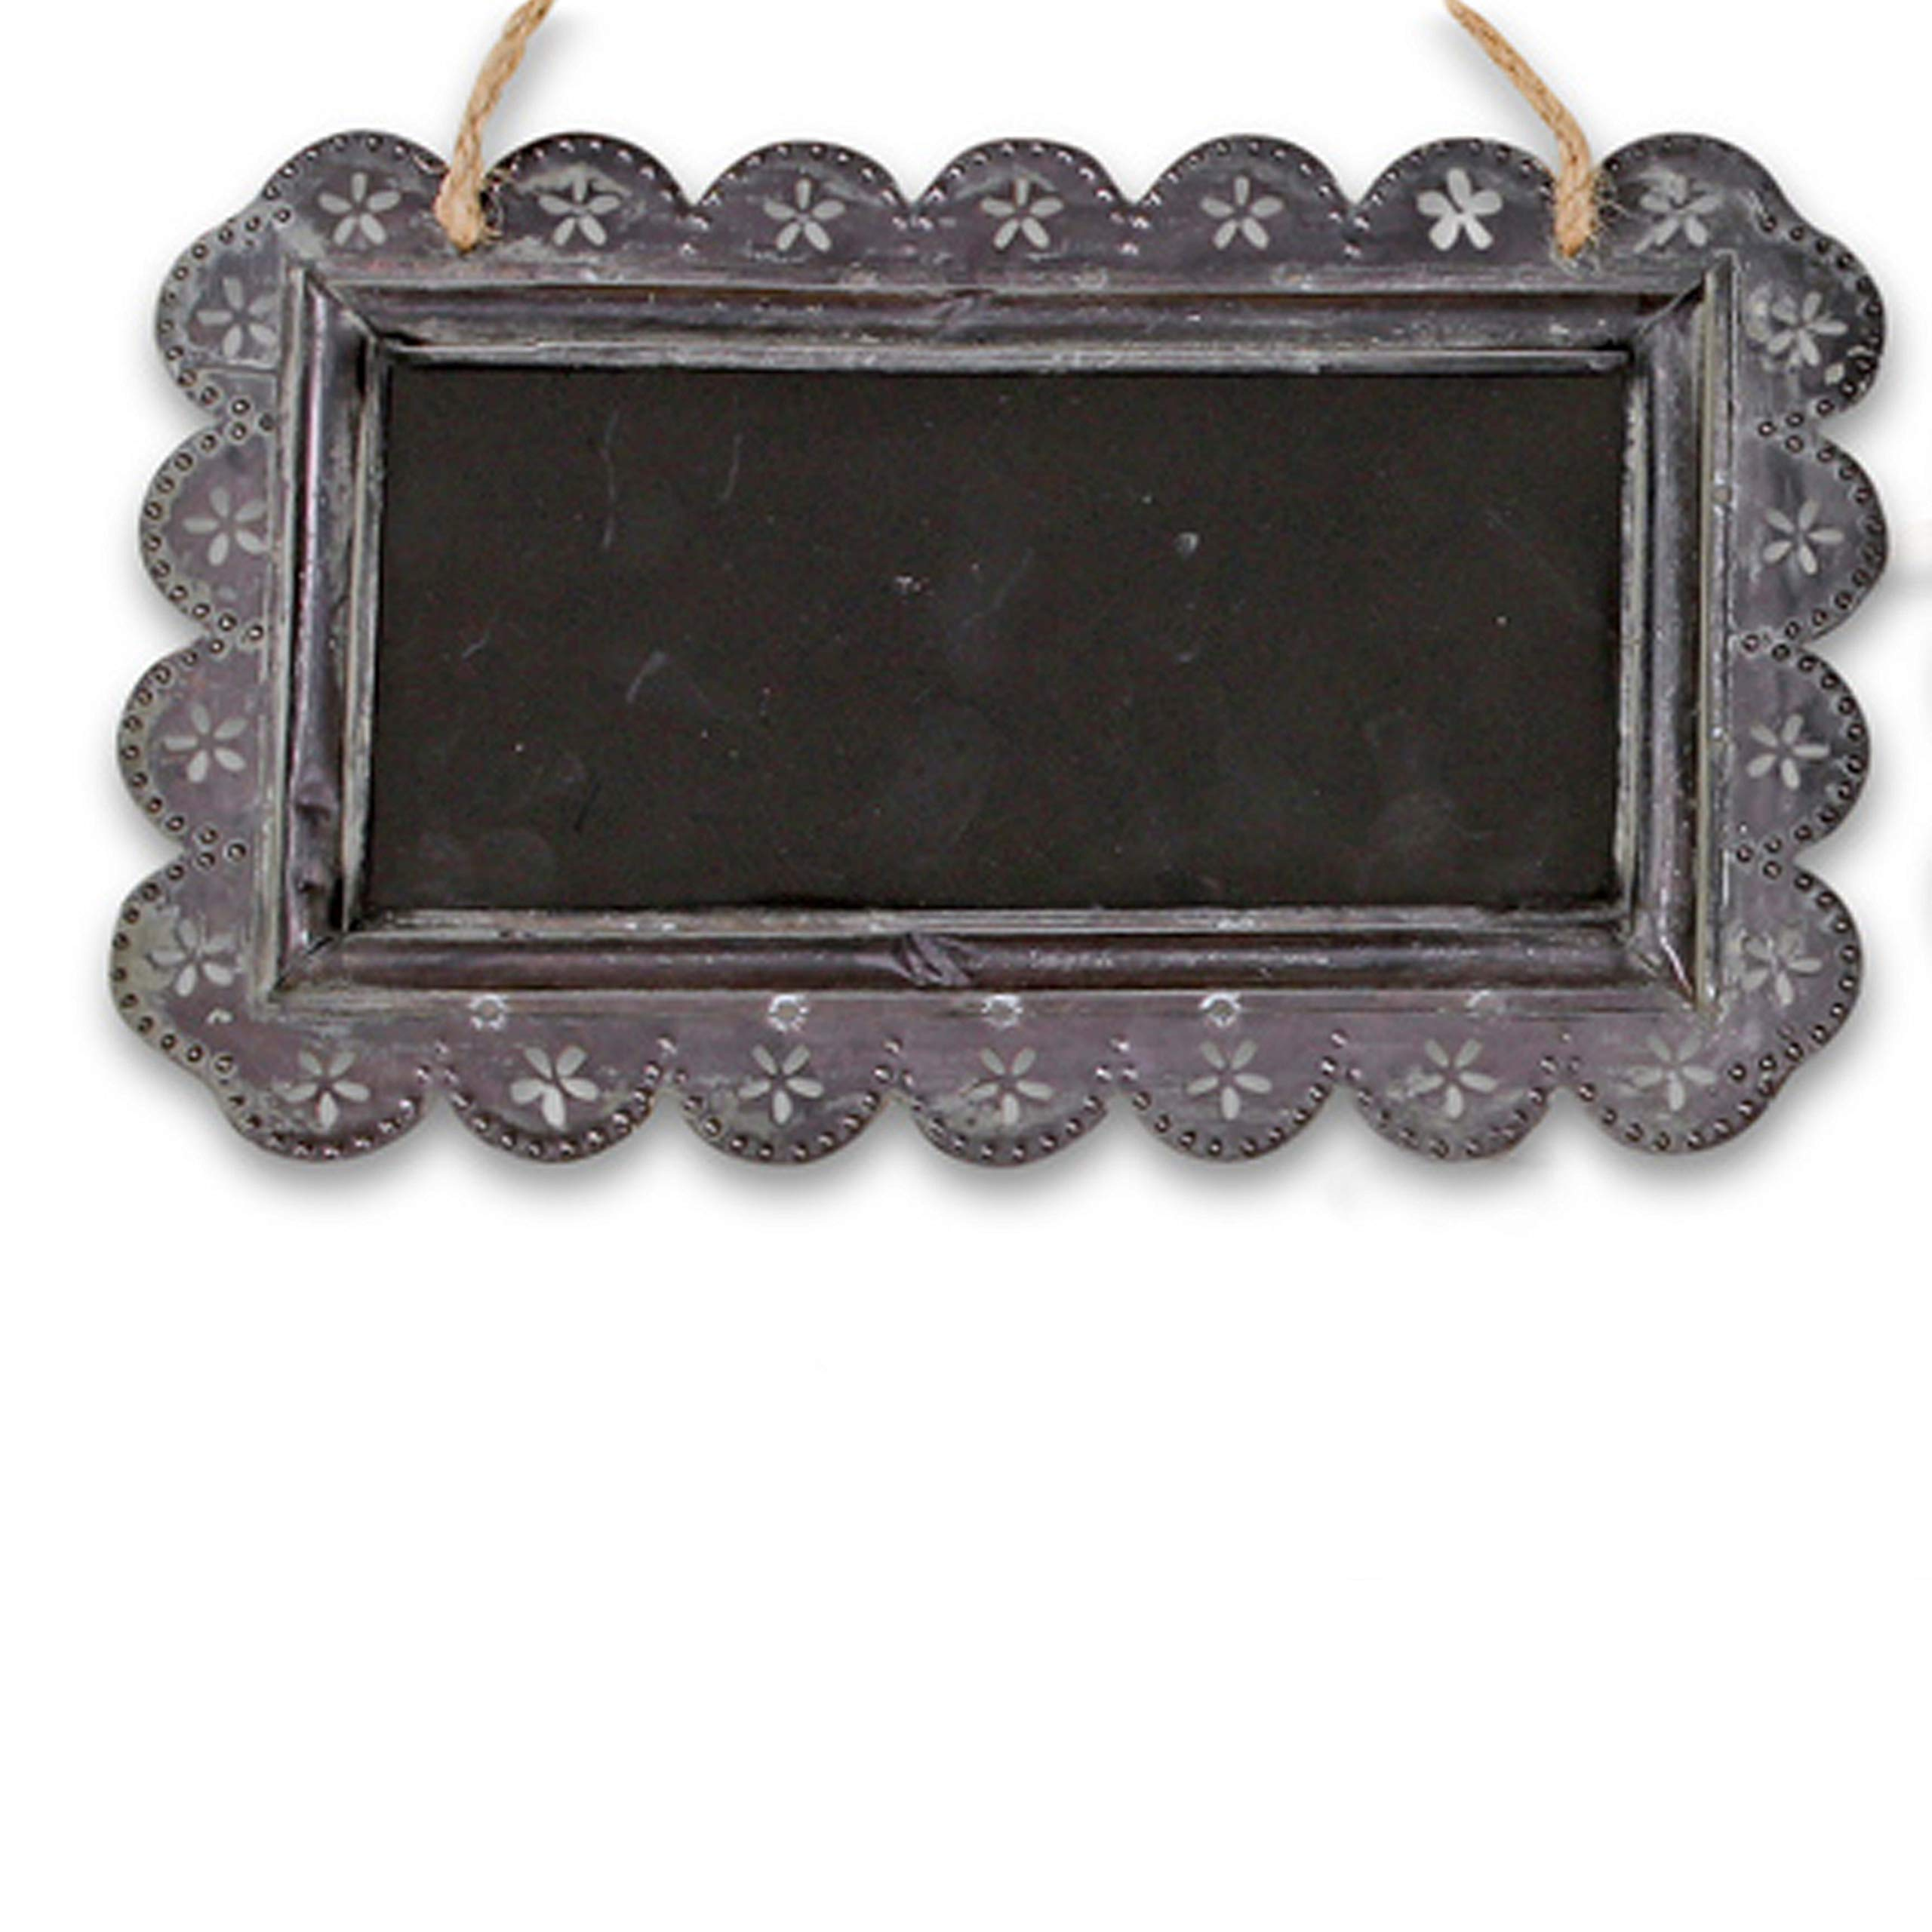 Farmers Market Chalkboard, Galvanized Weathered Metal with Punched Flower Frame, Knotted Twine Hanger, MDF Wood, 15 1/2 x 9 1/2 Inches